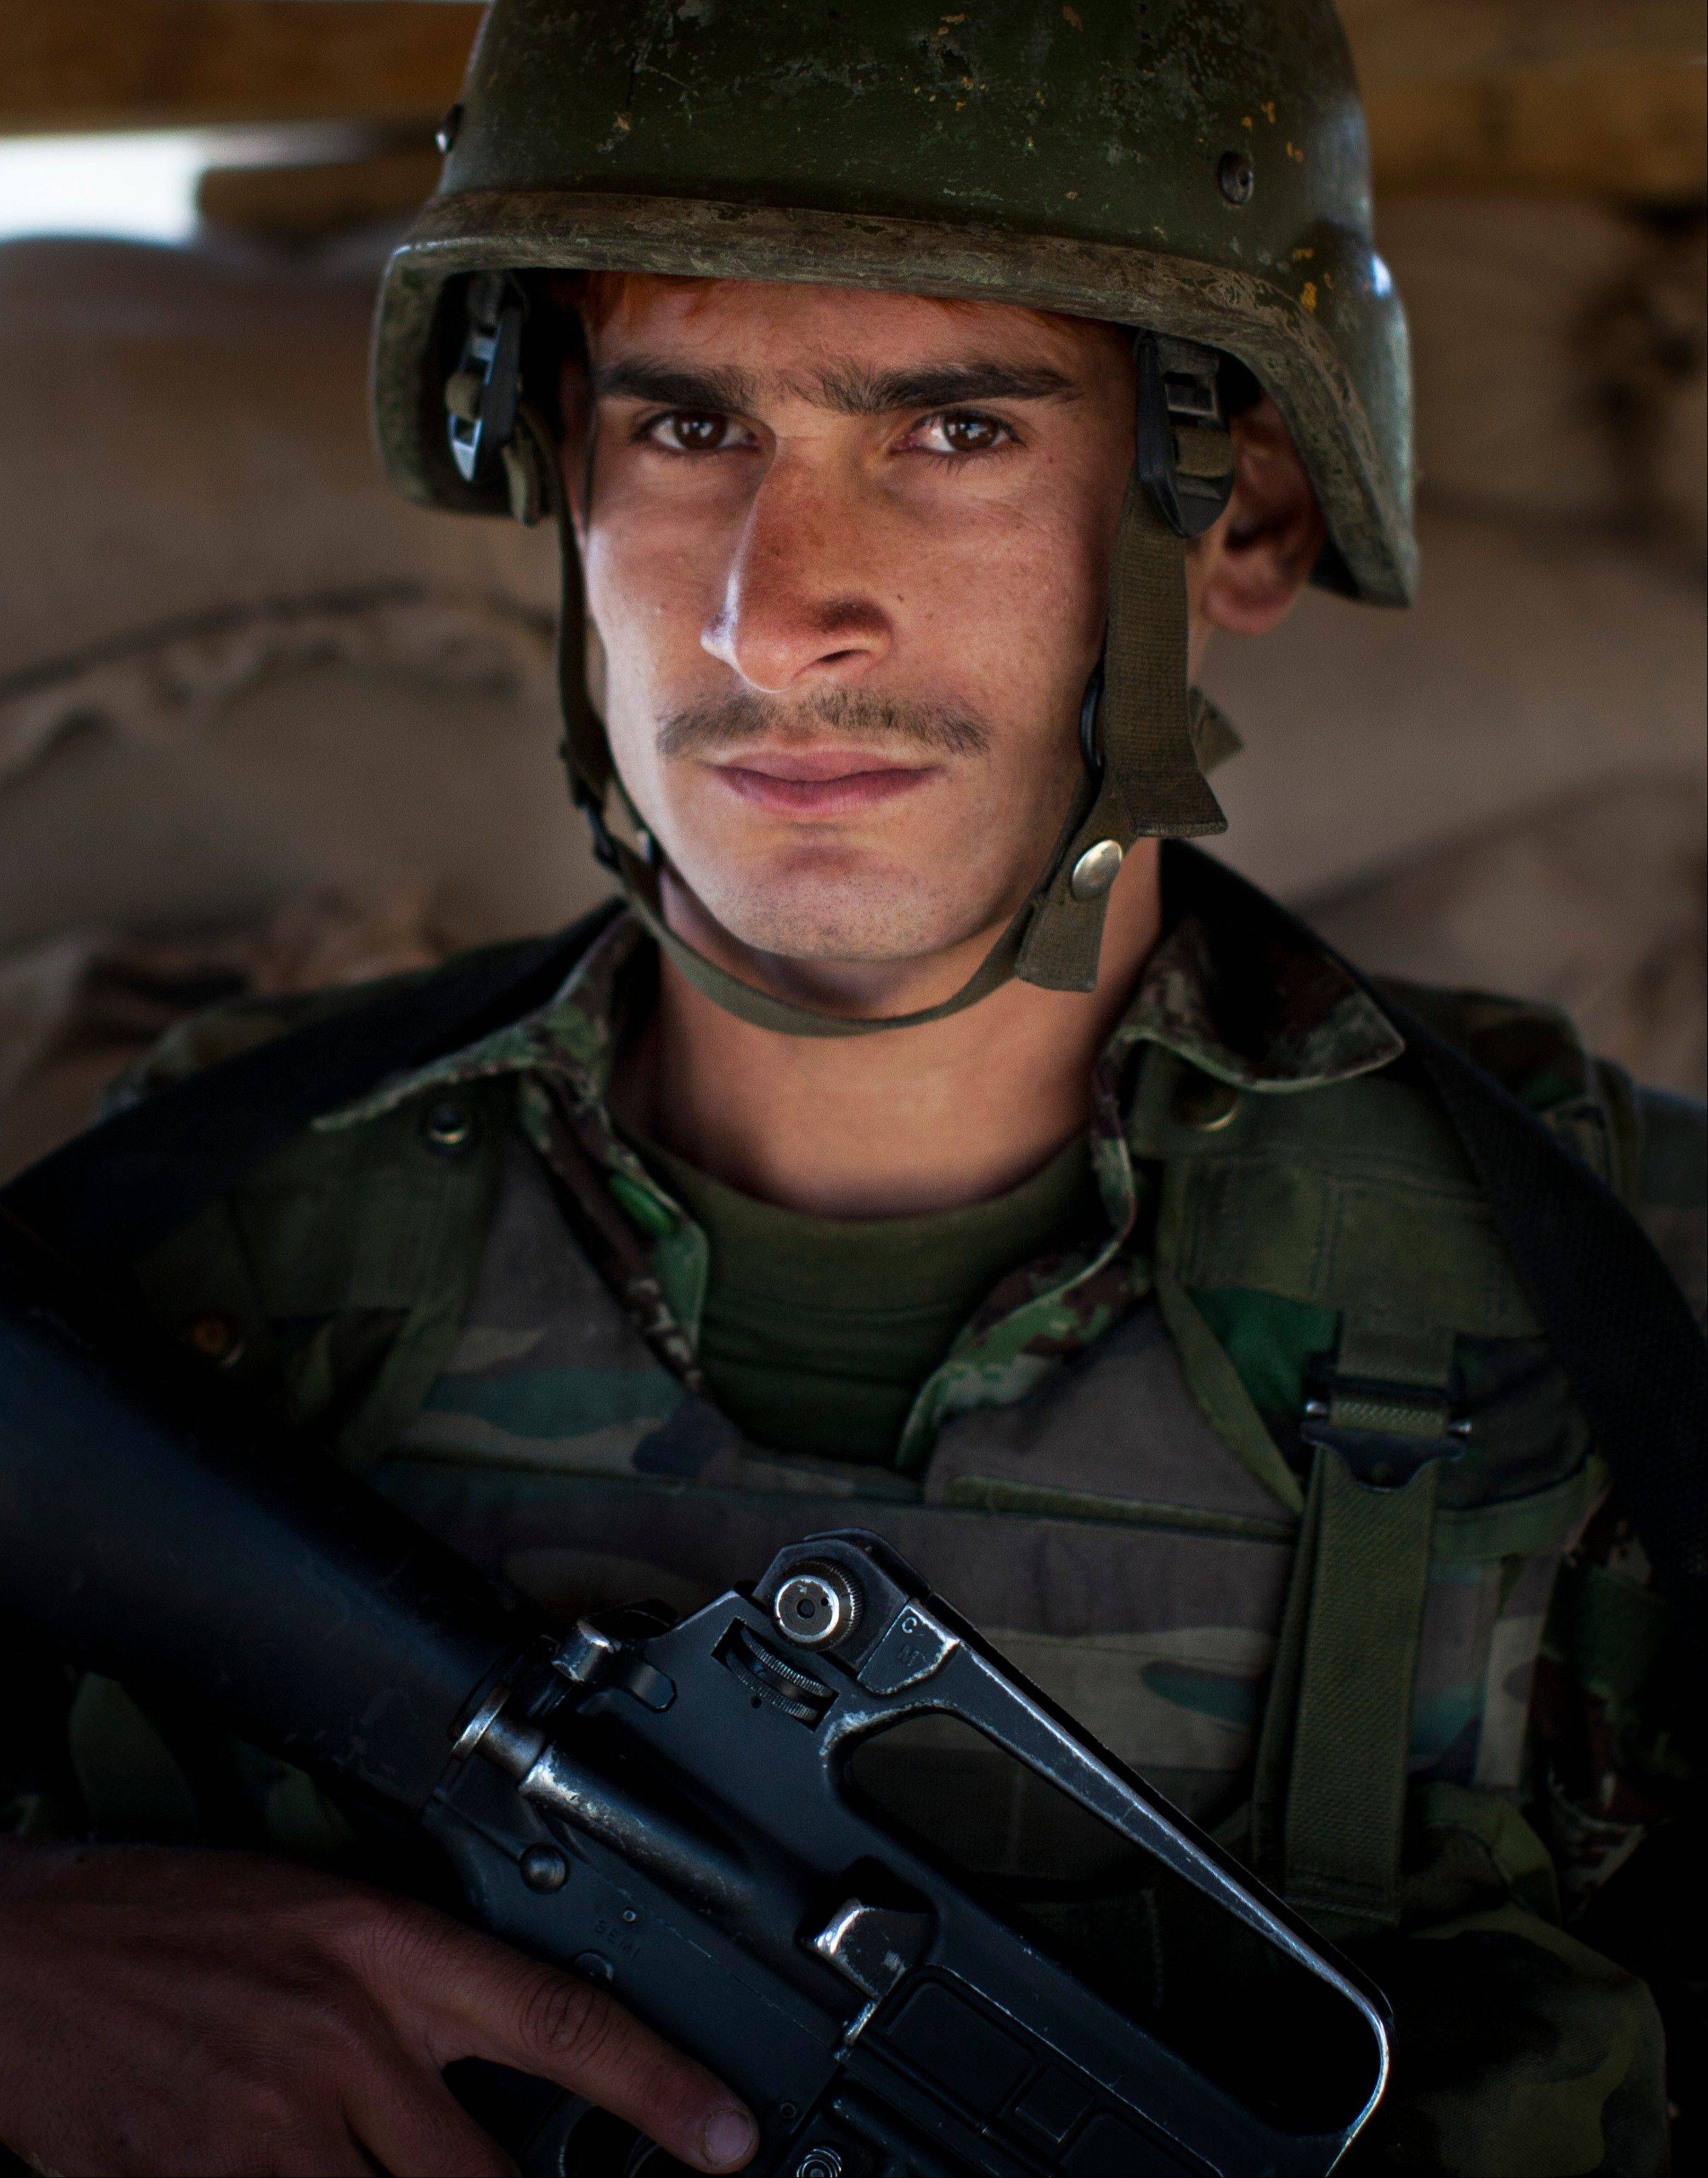 "Afghan National Army soldier Noor Ali, 21, poses for a picture Tuesday at the Chinari outpost in Logar province, east Afghanistan, wearing his unit's single helmet. Ali thinks he's 21, lost his parents when he was young, never went to school and worked as a laborer. He joined the army 10 months ago and learned basic reading and writing. He dyed his hair flaming red, explaining shyly, ""I did this to look good. In my village it is popular."""